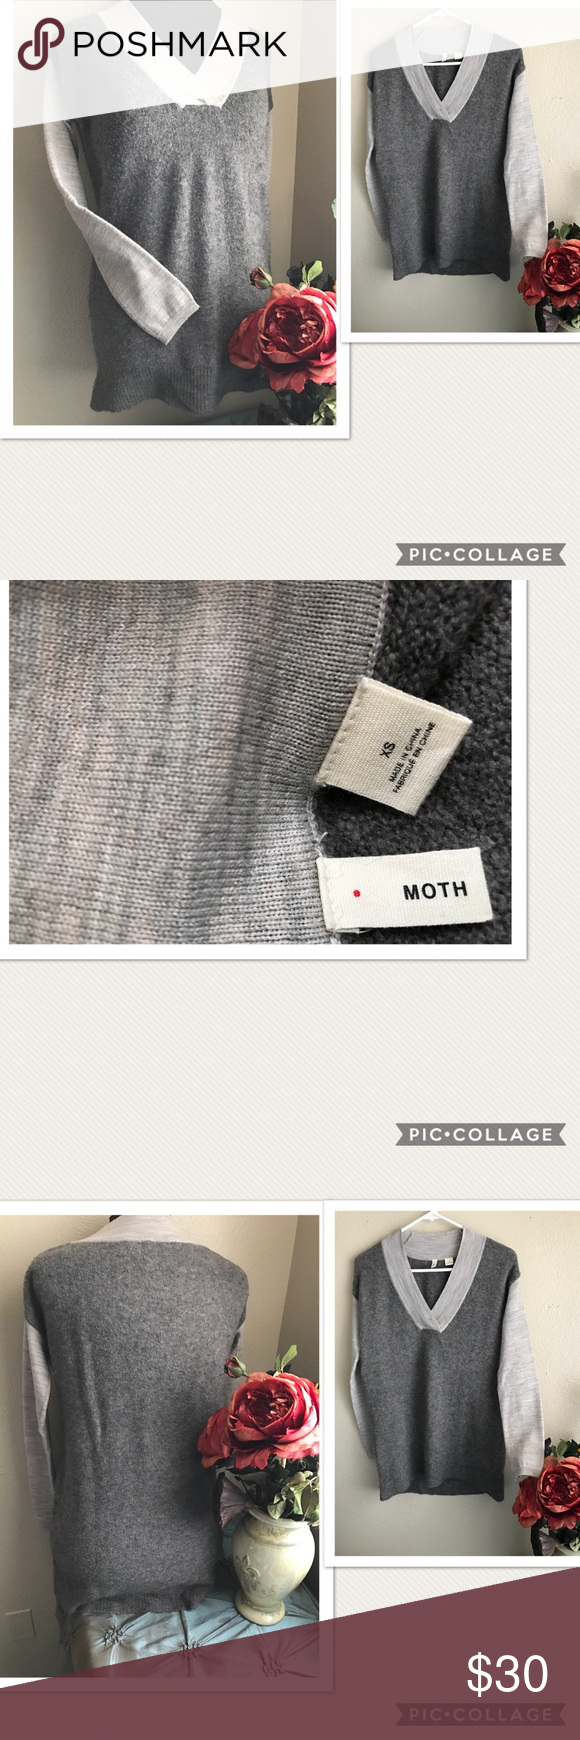 "Anthropologie MOTH Wool Alpaca Sweater Anthropologie MOTH Wool Alpaca Sweater. Two toned gray. Material: 47% Wool, 40% Nylon, 9% Alpaca, 4% Spandex. Size: XS. Pit-pit: 20"", Length: 27.5"". Preowned with normal signs of wash and wear. Great used condition. Anthropologie Sweaters V-Necks"